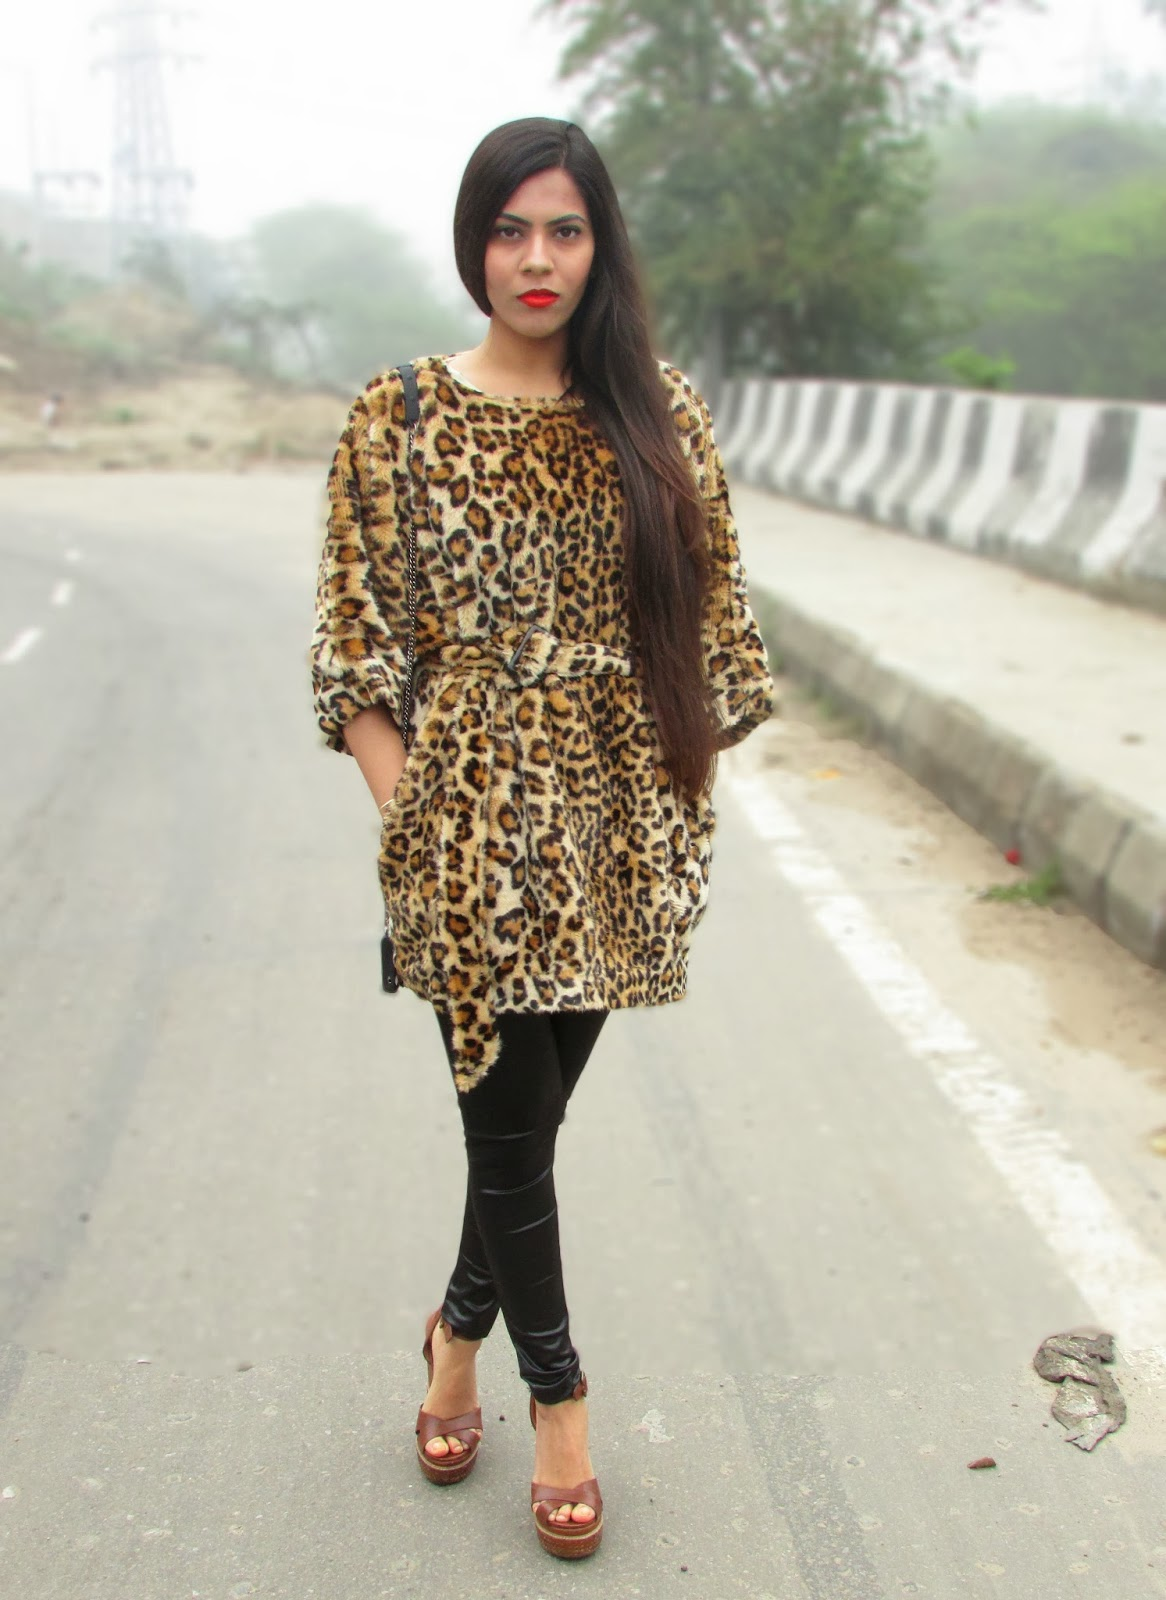 Leopard, leopard print, leopard print coat, leopard print shoes, leopard print sweatshirt, leopard print loafers, leopard print shirt, leopard print top, leopard print trench coat, leopard print leggings, leopard print heels, leopard print pumps, leopard print wallet, leopard print bag, leopard print sling bag , leopard print furry coat, leopard print sweater, leopard print pullover, leopard print cardigan, leopard shoes, leopard sweatshirt, leopard loafers, leopard shirt, leopard top, leopard trench coat, leopard leggings, leopard heels, leopard pumps, leopard wallet, leopard bag, leopard sling bag , leopard furry coat, leopard sweater, leopard pullover, leopard cardigan, front row shop leopard print shoes, front row shop leopard print sweatshirt, front row shop leopard print loafers, front row shop front row shop leopard print shirt, front row shop leopard print top, front row shop leopard print trench coat, front row shop leopard print leggings, front row shop leopard print heels, front row shop leopard print pumps, front row shop leopard print wallet, front row shop leopard print bag, front row shop leopard print sling bag ,front row shop leopard print furry coat, front row shop leopard print sweater, front row shop leopard print pullover, front row shop leopard print cardigan, Cheap leopard print shoes, Cheap leopard print sweatshirt, Cheap leopard print loafers, Cheap leopard print shirt, Cheap leopard print top, Cheap leopard print trench coat, Cheap leopard print leggings, Cheap leopard print heels, Cheap leopard print pumps, Cheap leopard print wallet, Cheap leopard print bag, Cheap leopard print sling bag , Cheap leopard print furry coat, Cheap leopard print sweater, Cheap leopard print pullover, Cheap leopard print cardigan, Velvet, velvet top, velvet skirt, velvet dress, velvet clothes, velvet jacket, velvet coat, velvet skater skirt, velvet full sleeves top, velvet tshirt , velvet shirt, Blue Velvet, blue velvet top, blue velvet skirt, blue velvet dress